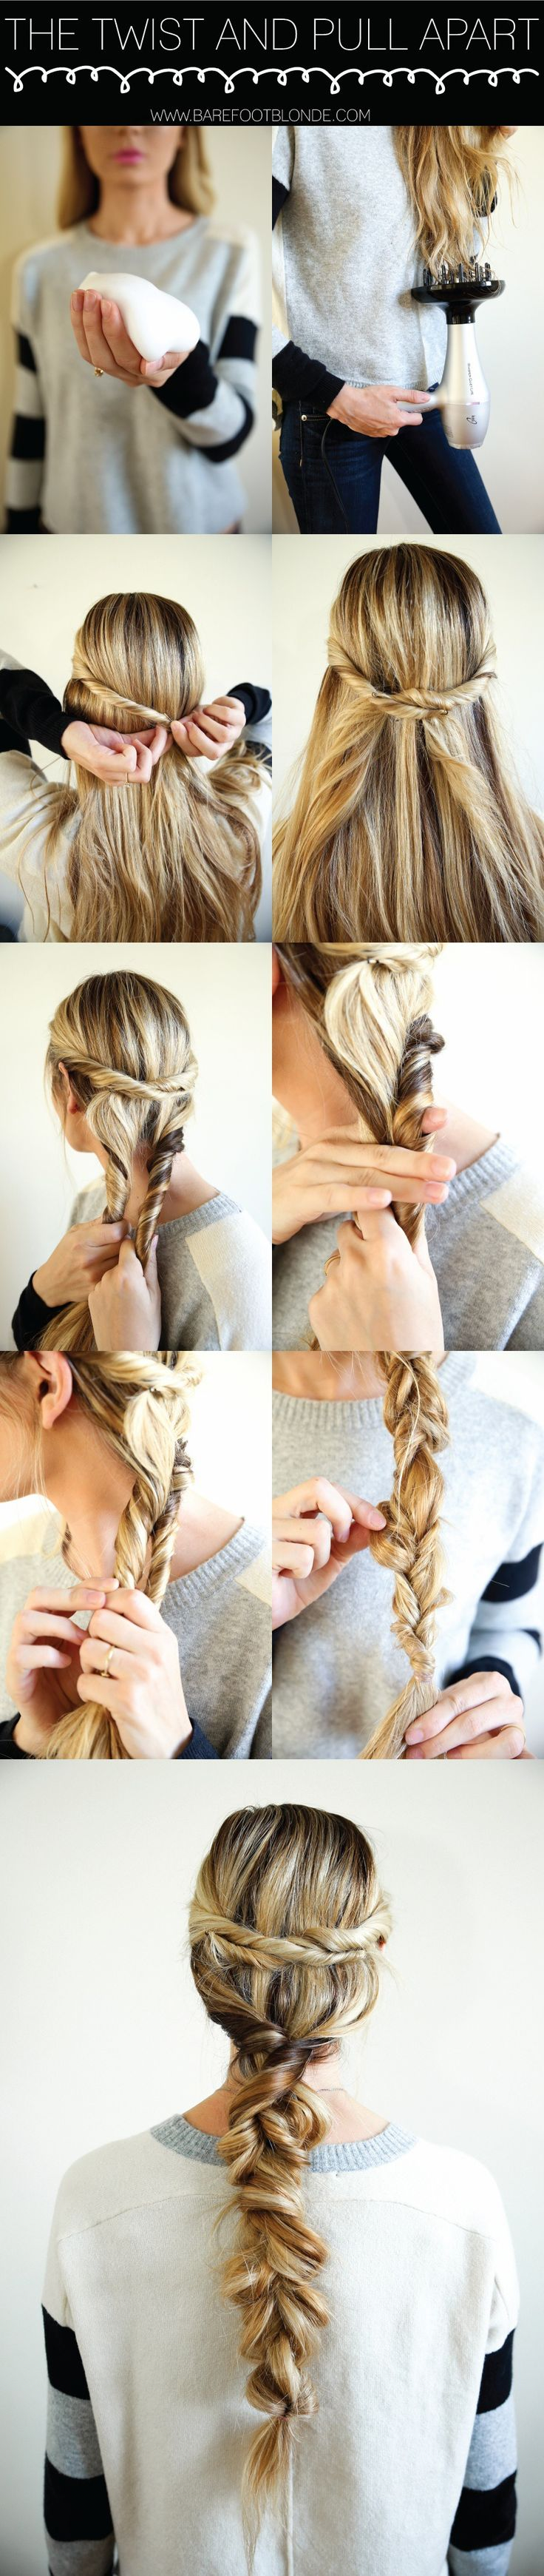 188 best hair ideas images on Pinterest